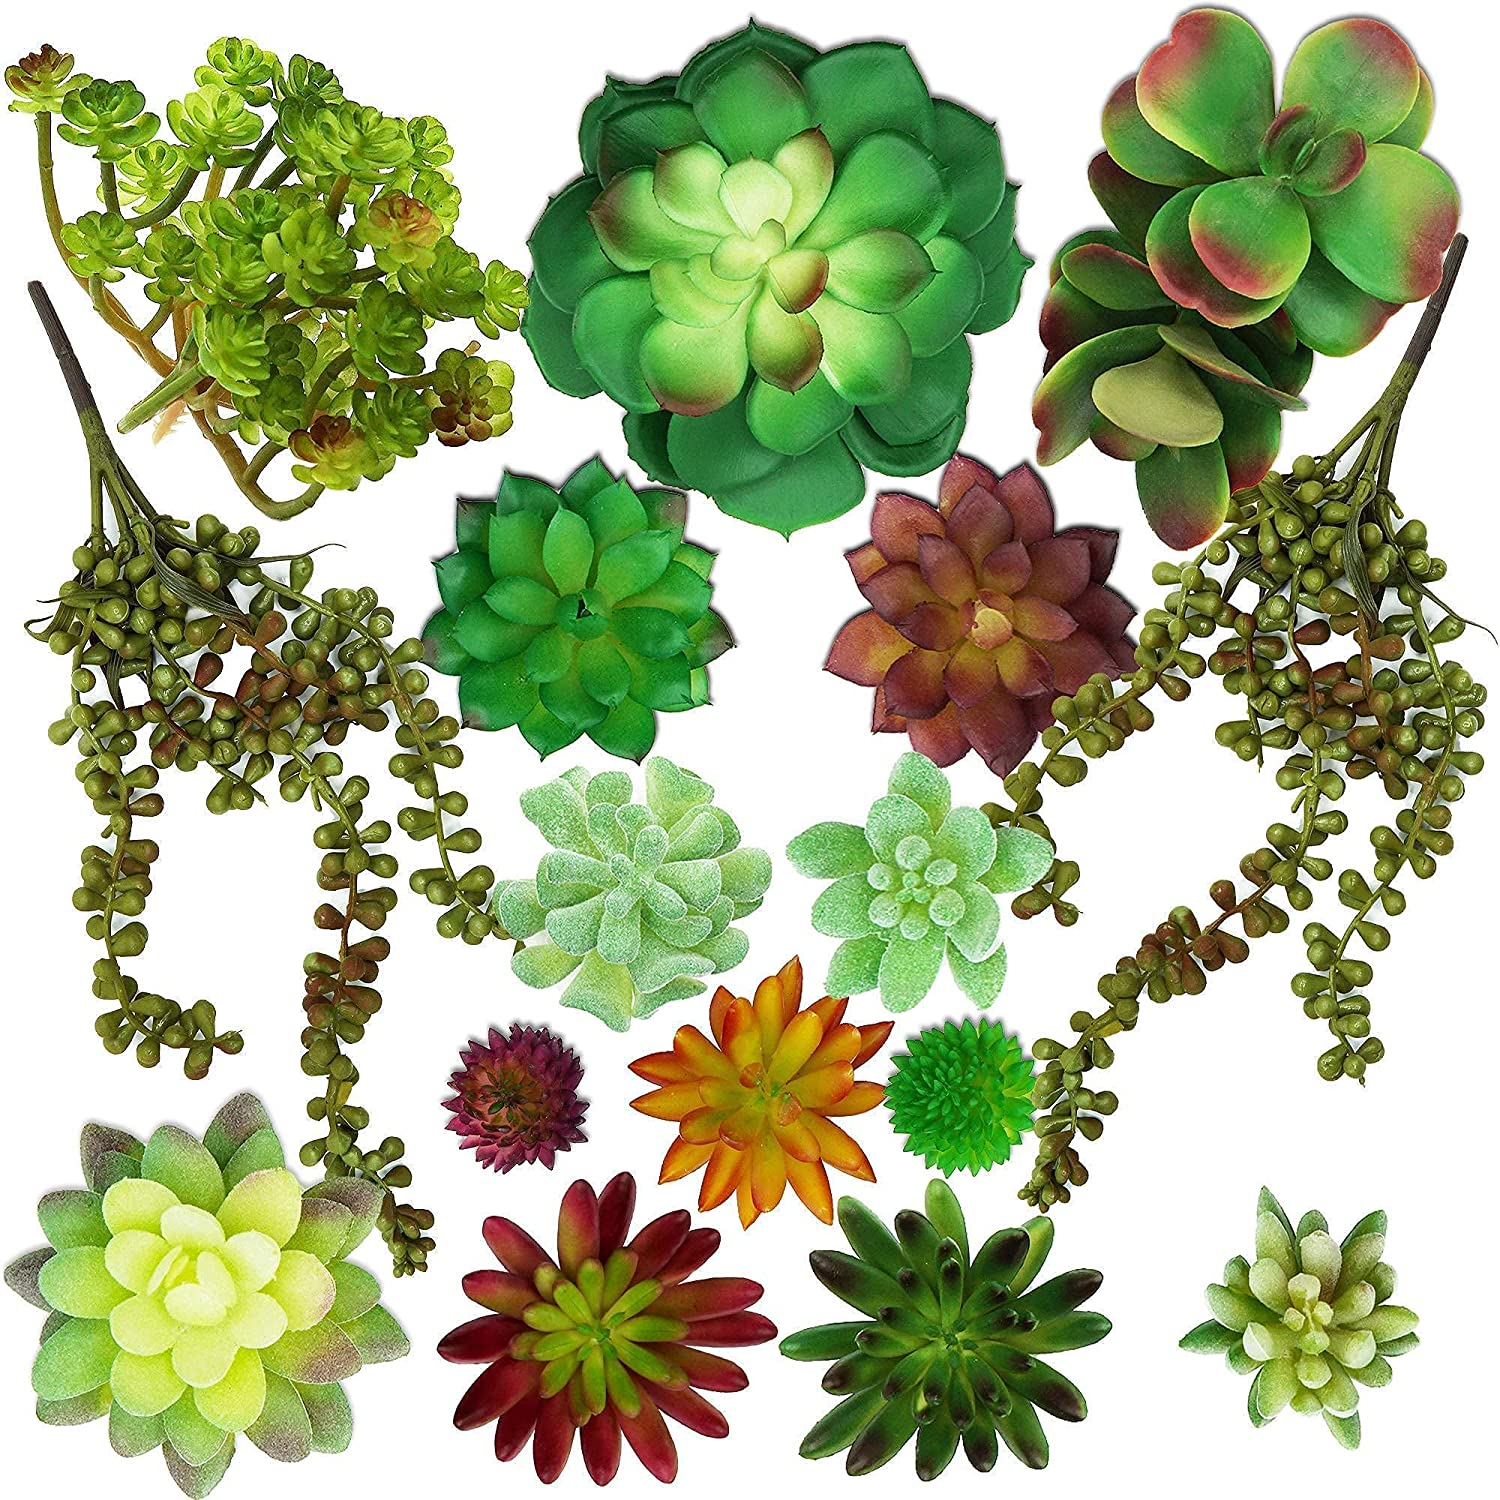 Succulents Plants Artificial 16 pcs - Faux Fake Unpotted Plants for Home Decorations - Includes String of Pearls Hanging Plant –Great Faux Indoor / Outdoor Greenery Decor in Terrarium, Pots or Shelf